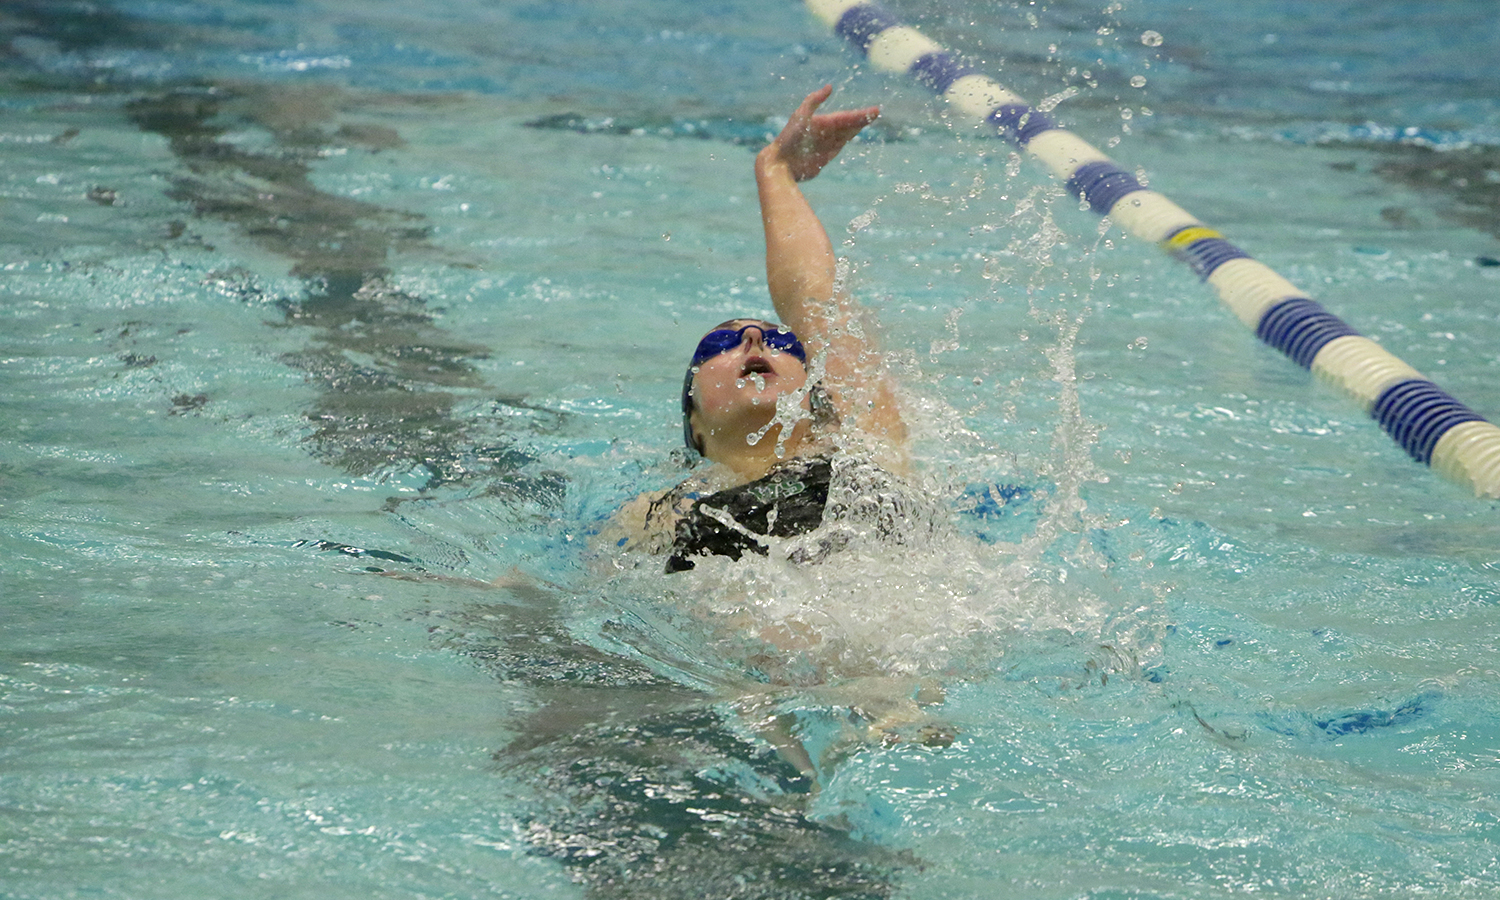 Anna Leffler '20 swims the backstroke as part of the 200 individual medley during William Smith's 143-95 win over Alfred University.